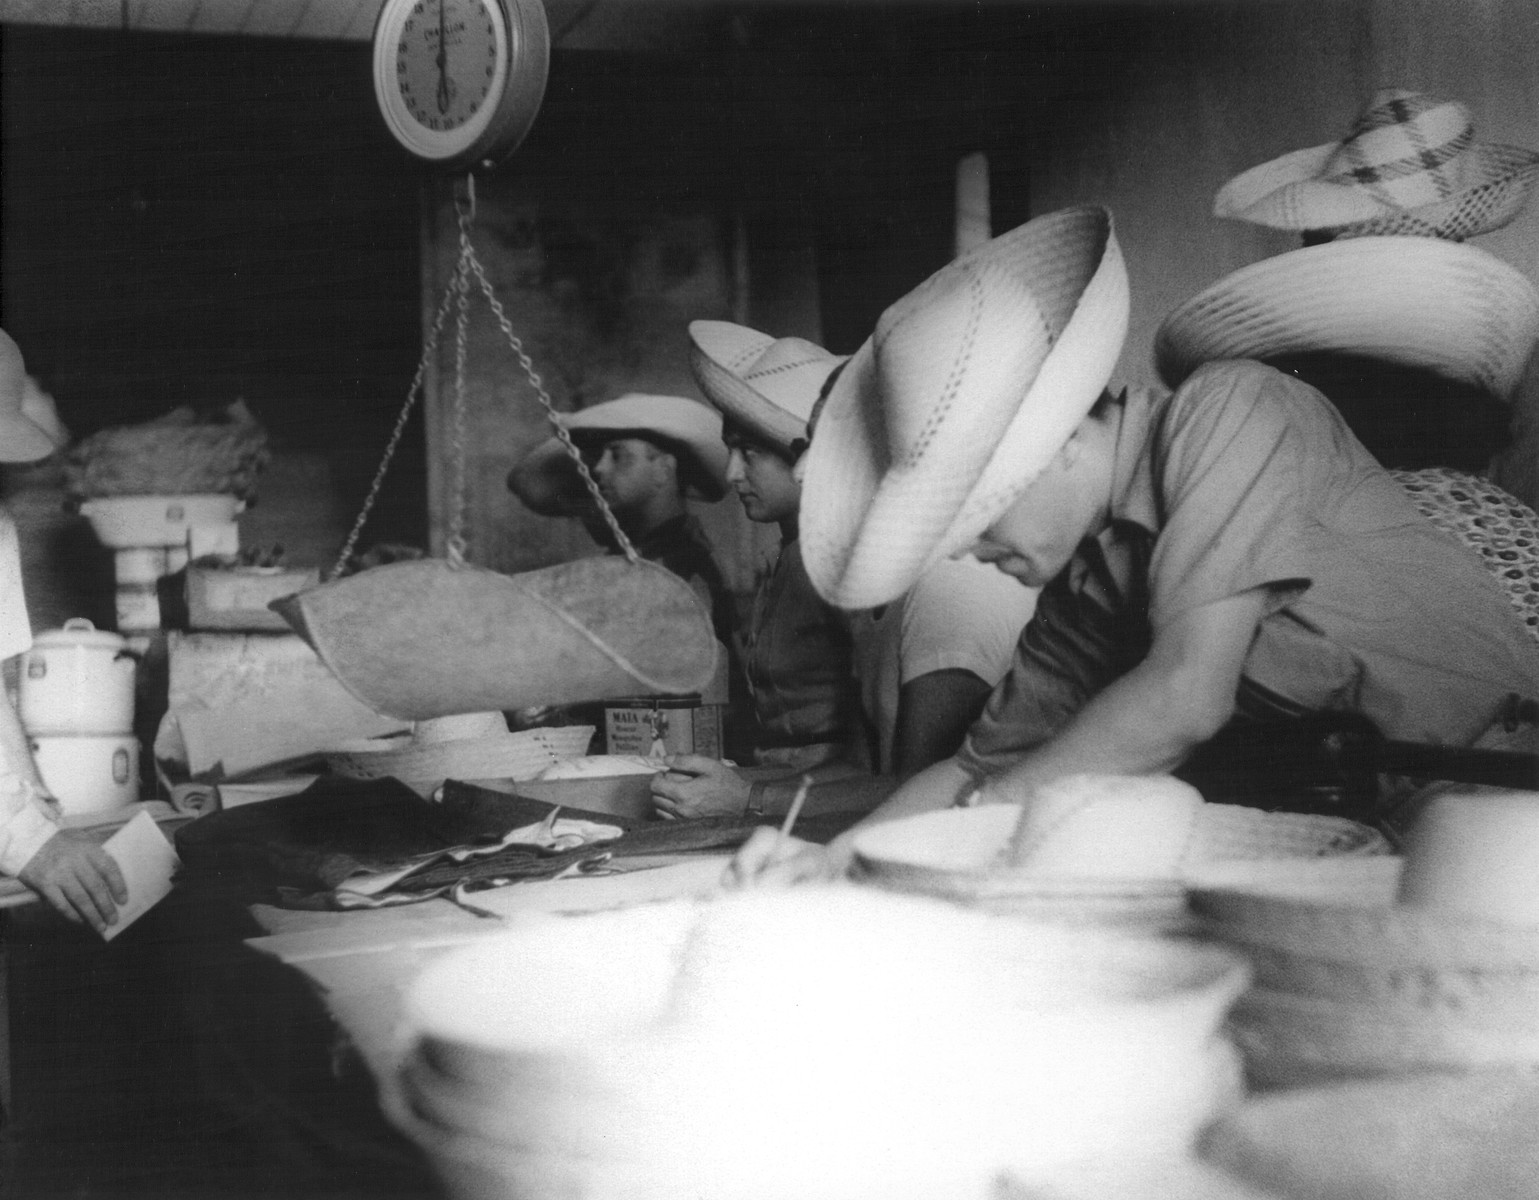 Jewish refugees make purchases in the El Colmado general store in Sosua.